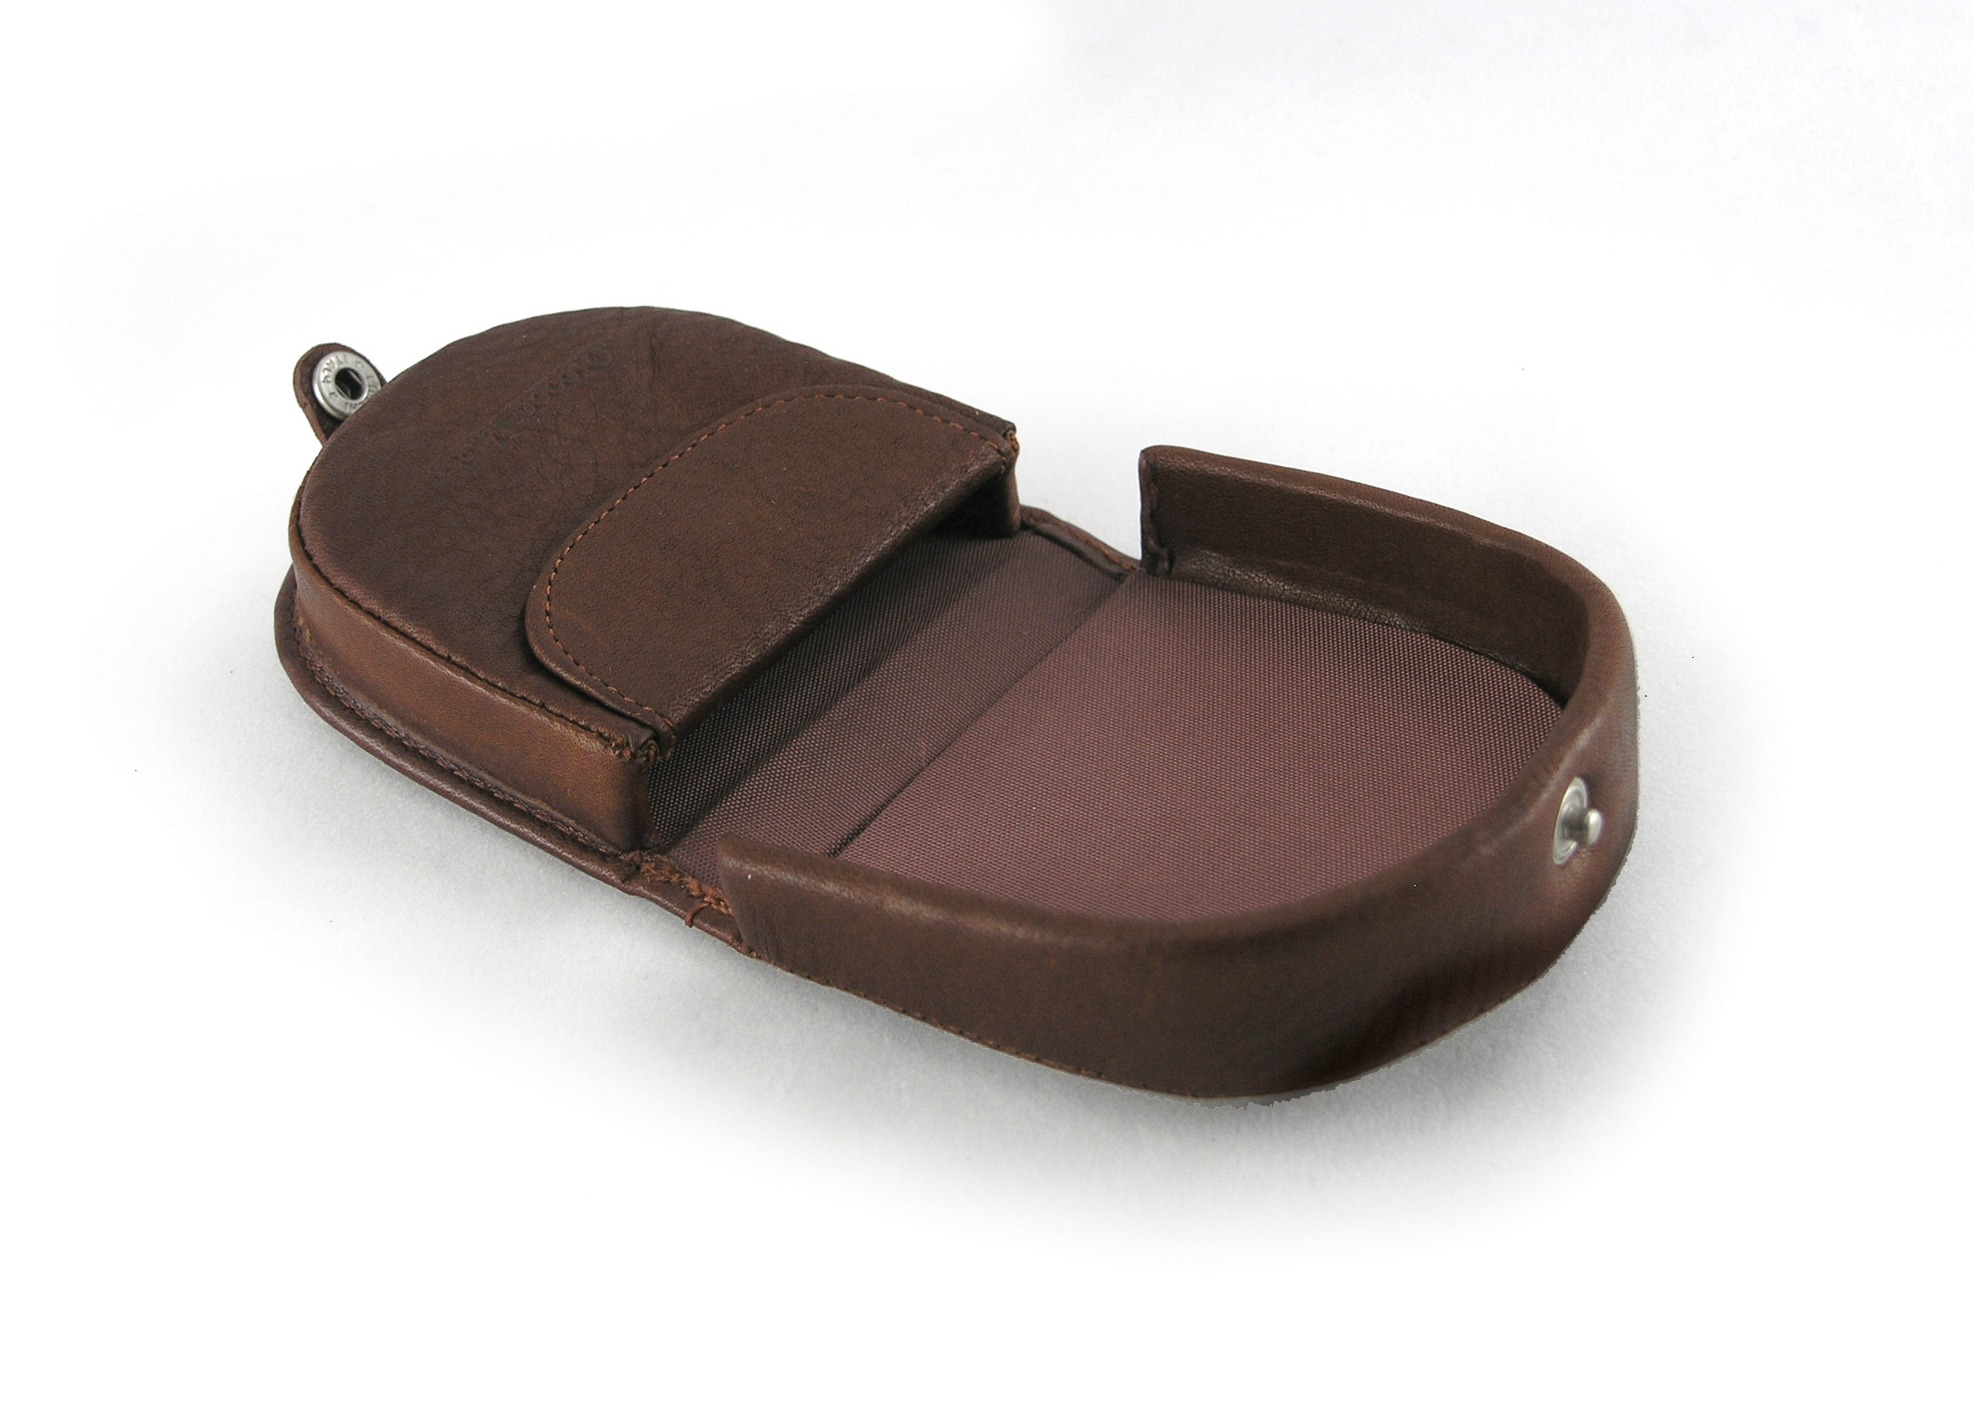 Osgoode Marley #1554 Deluxe Coin Tray